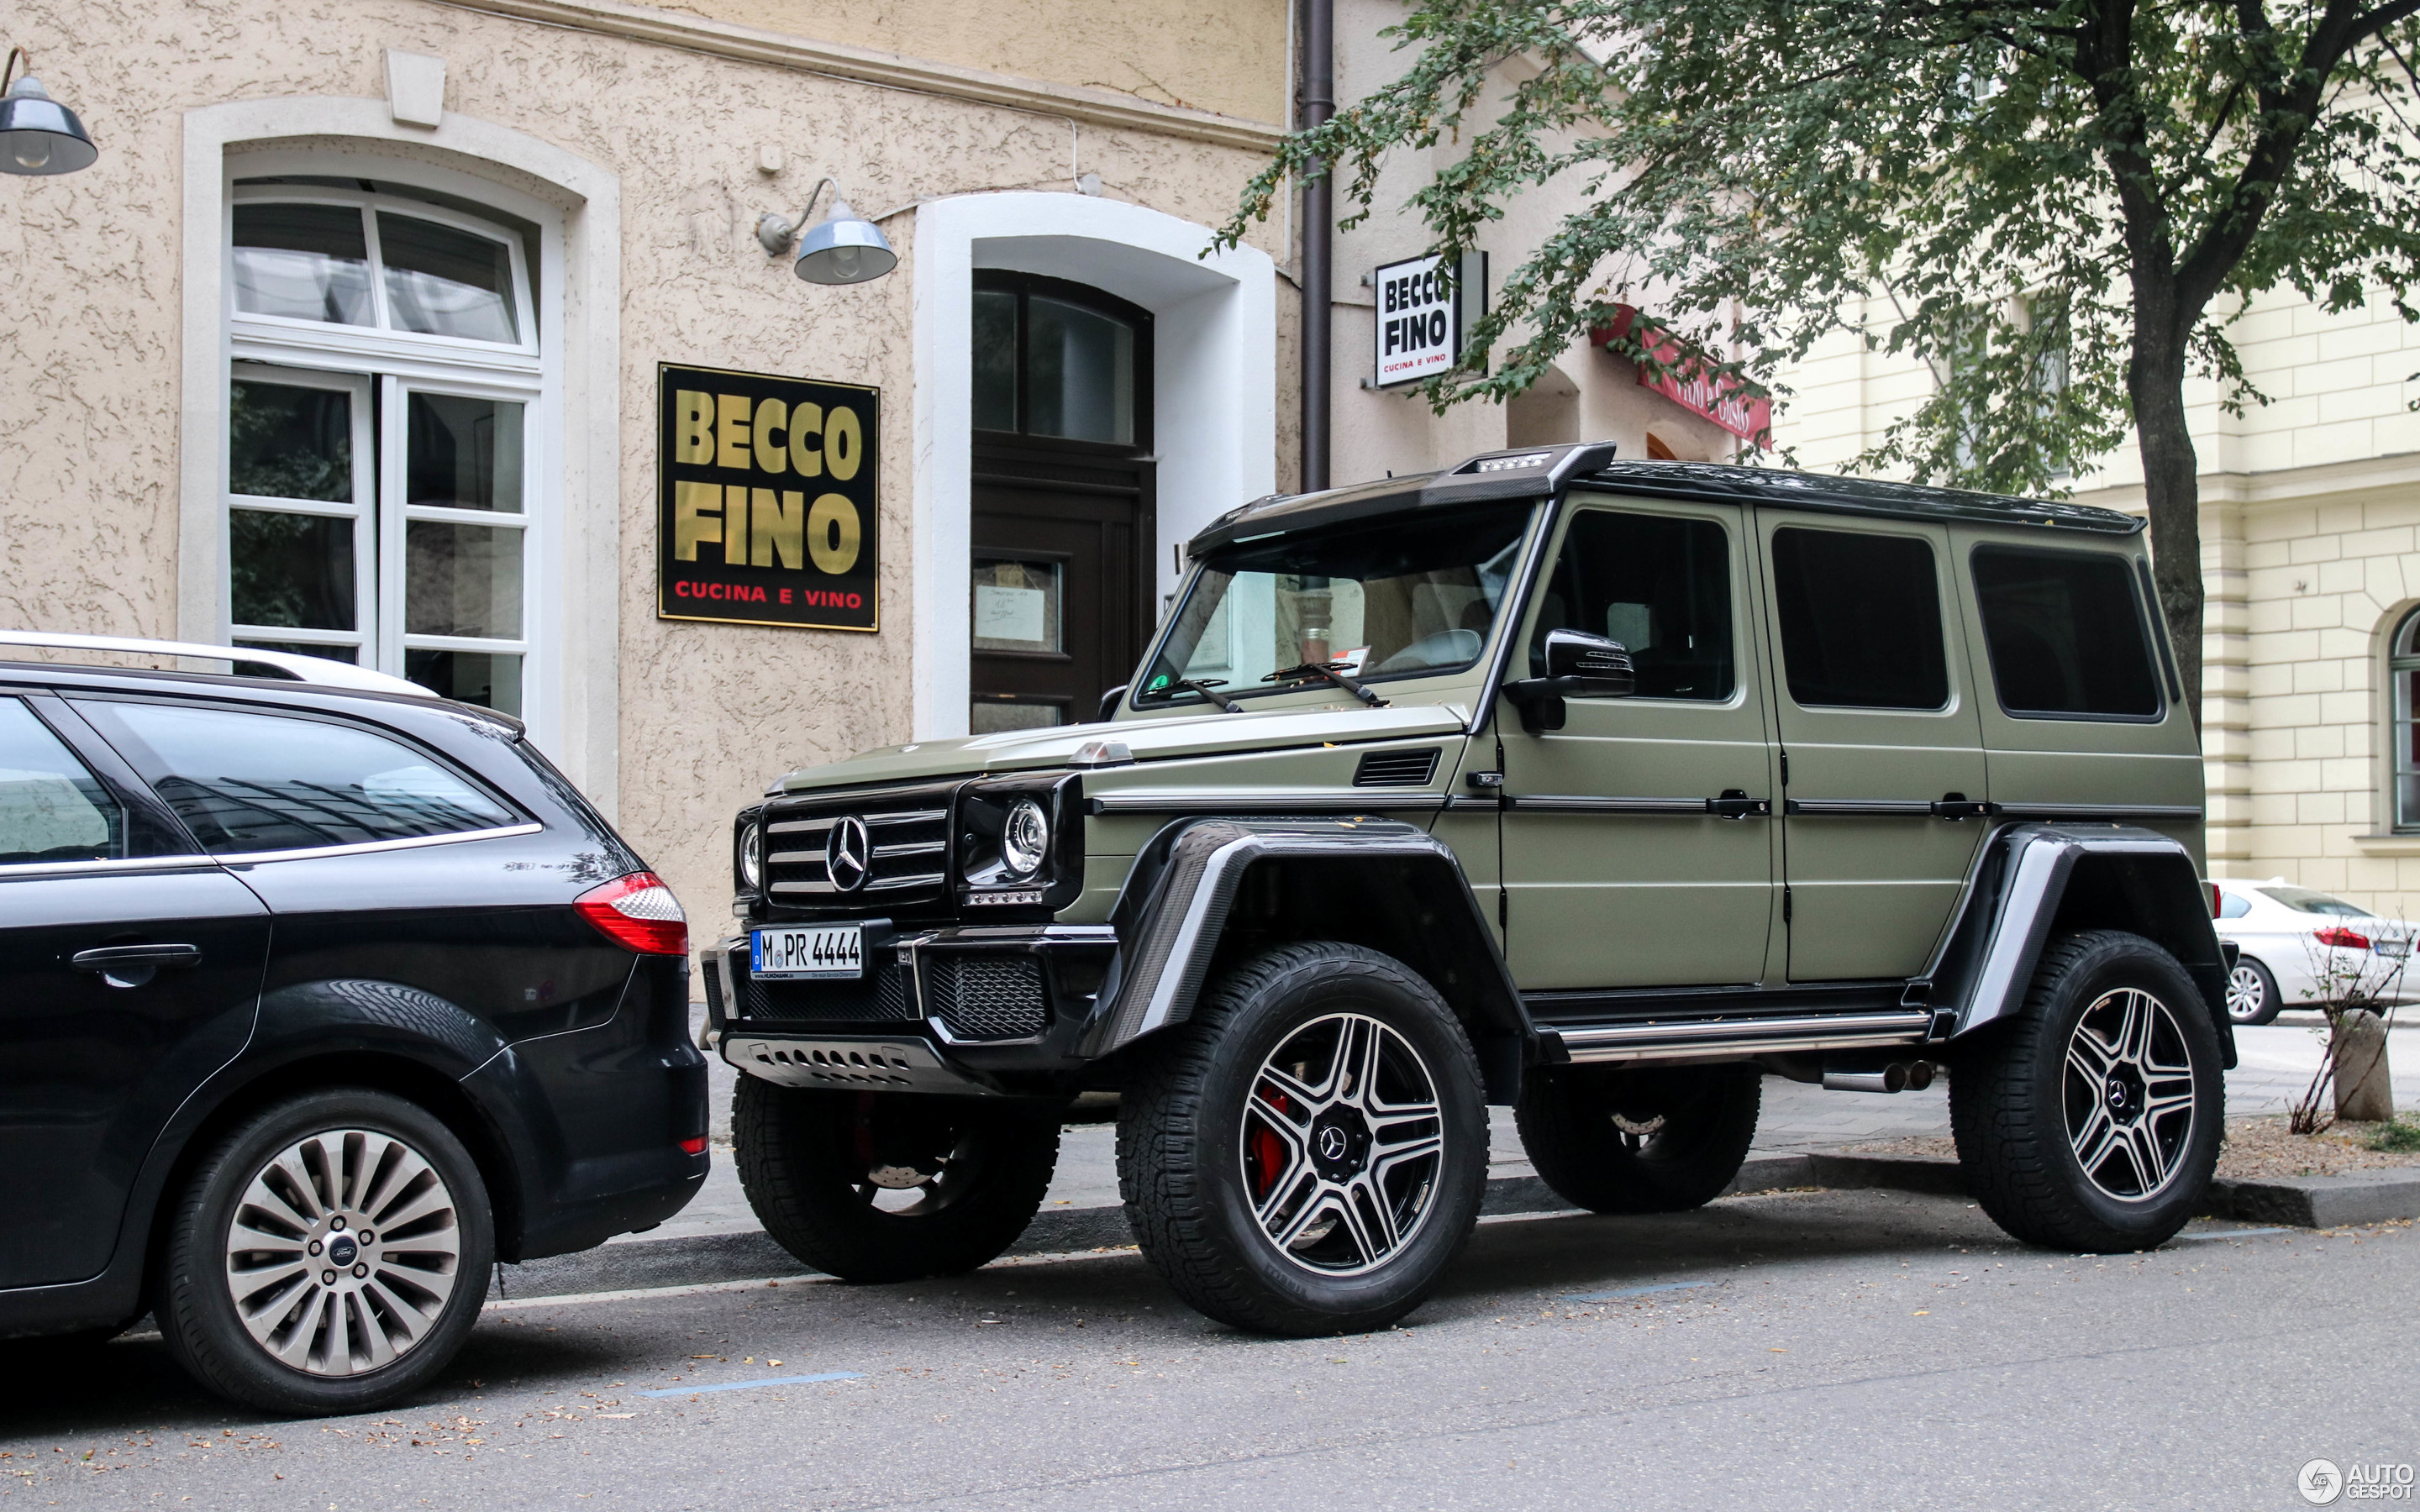 Cucina 4 X 4 mercedes-benz g 500 4x4² - 5 september 2018 - autogespot